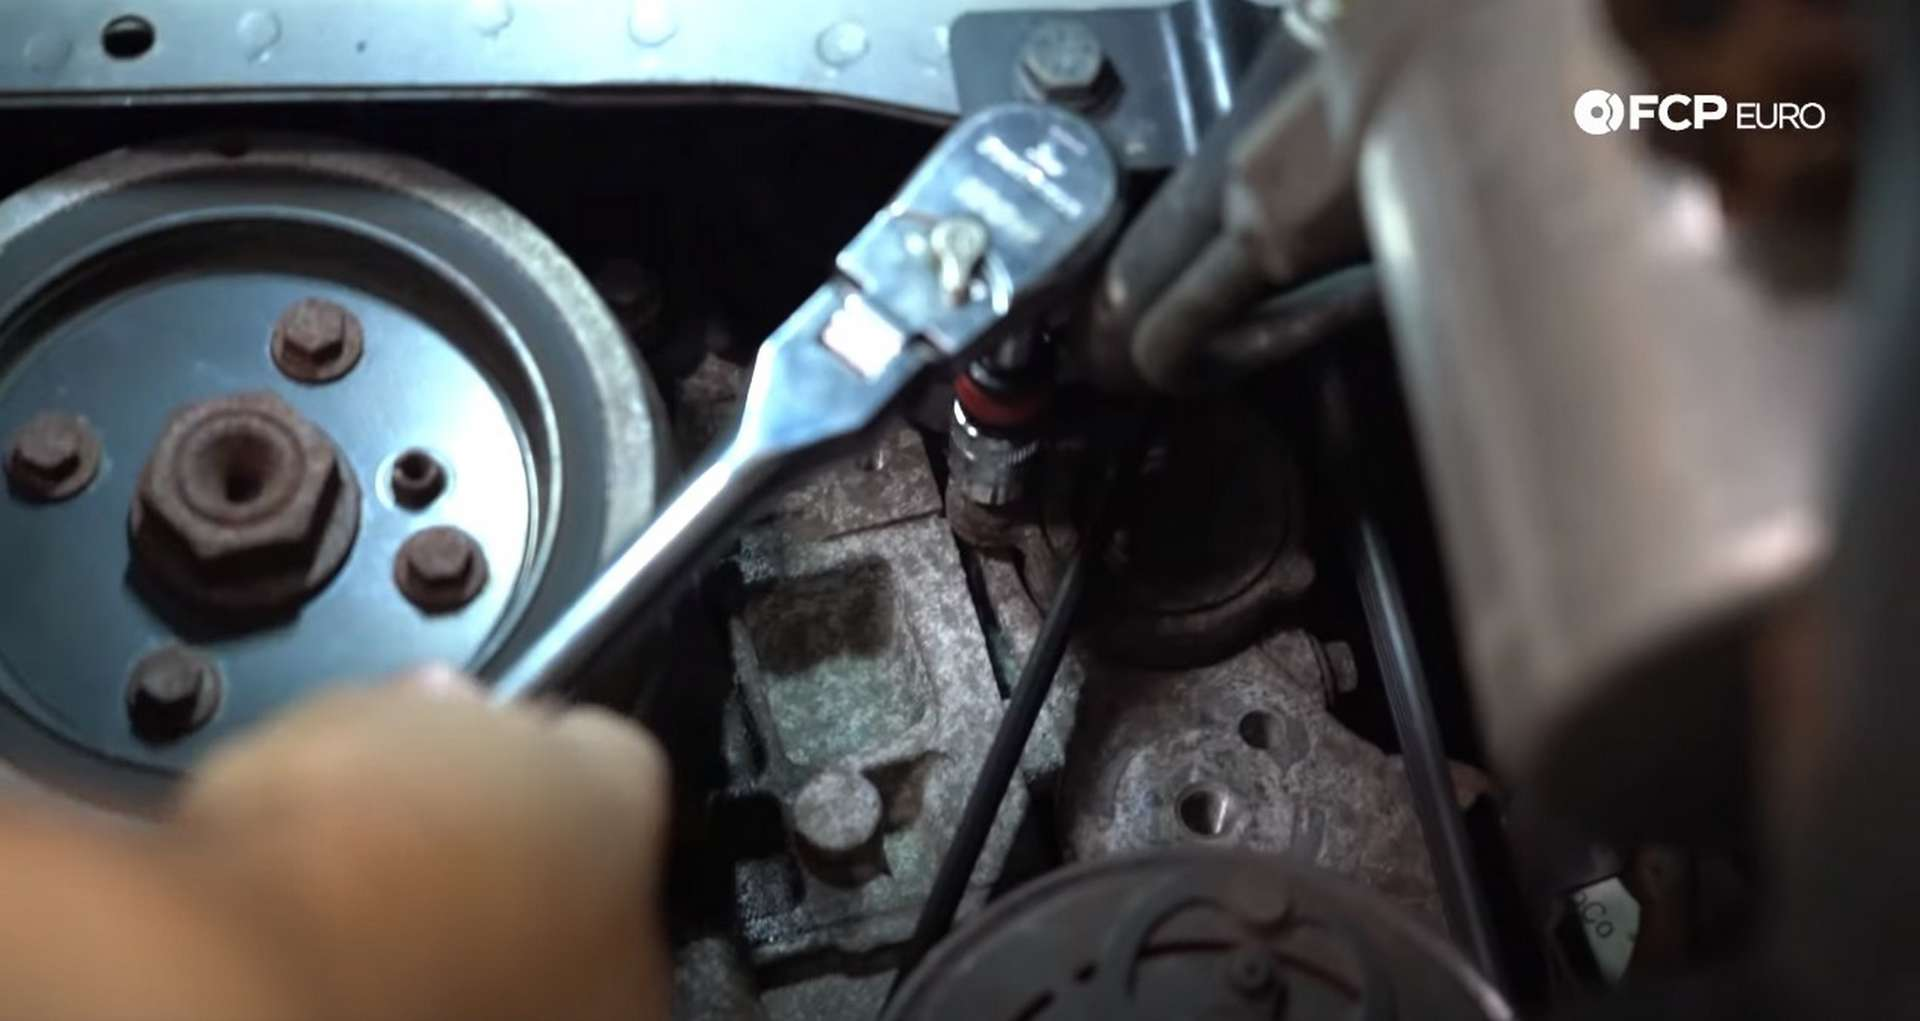 DIY Volvo Alternator and Serpentine Belt Replacement removing the inner belt